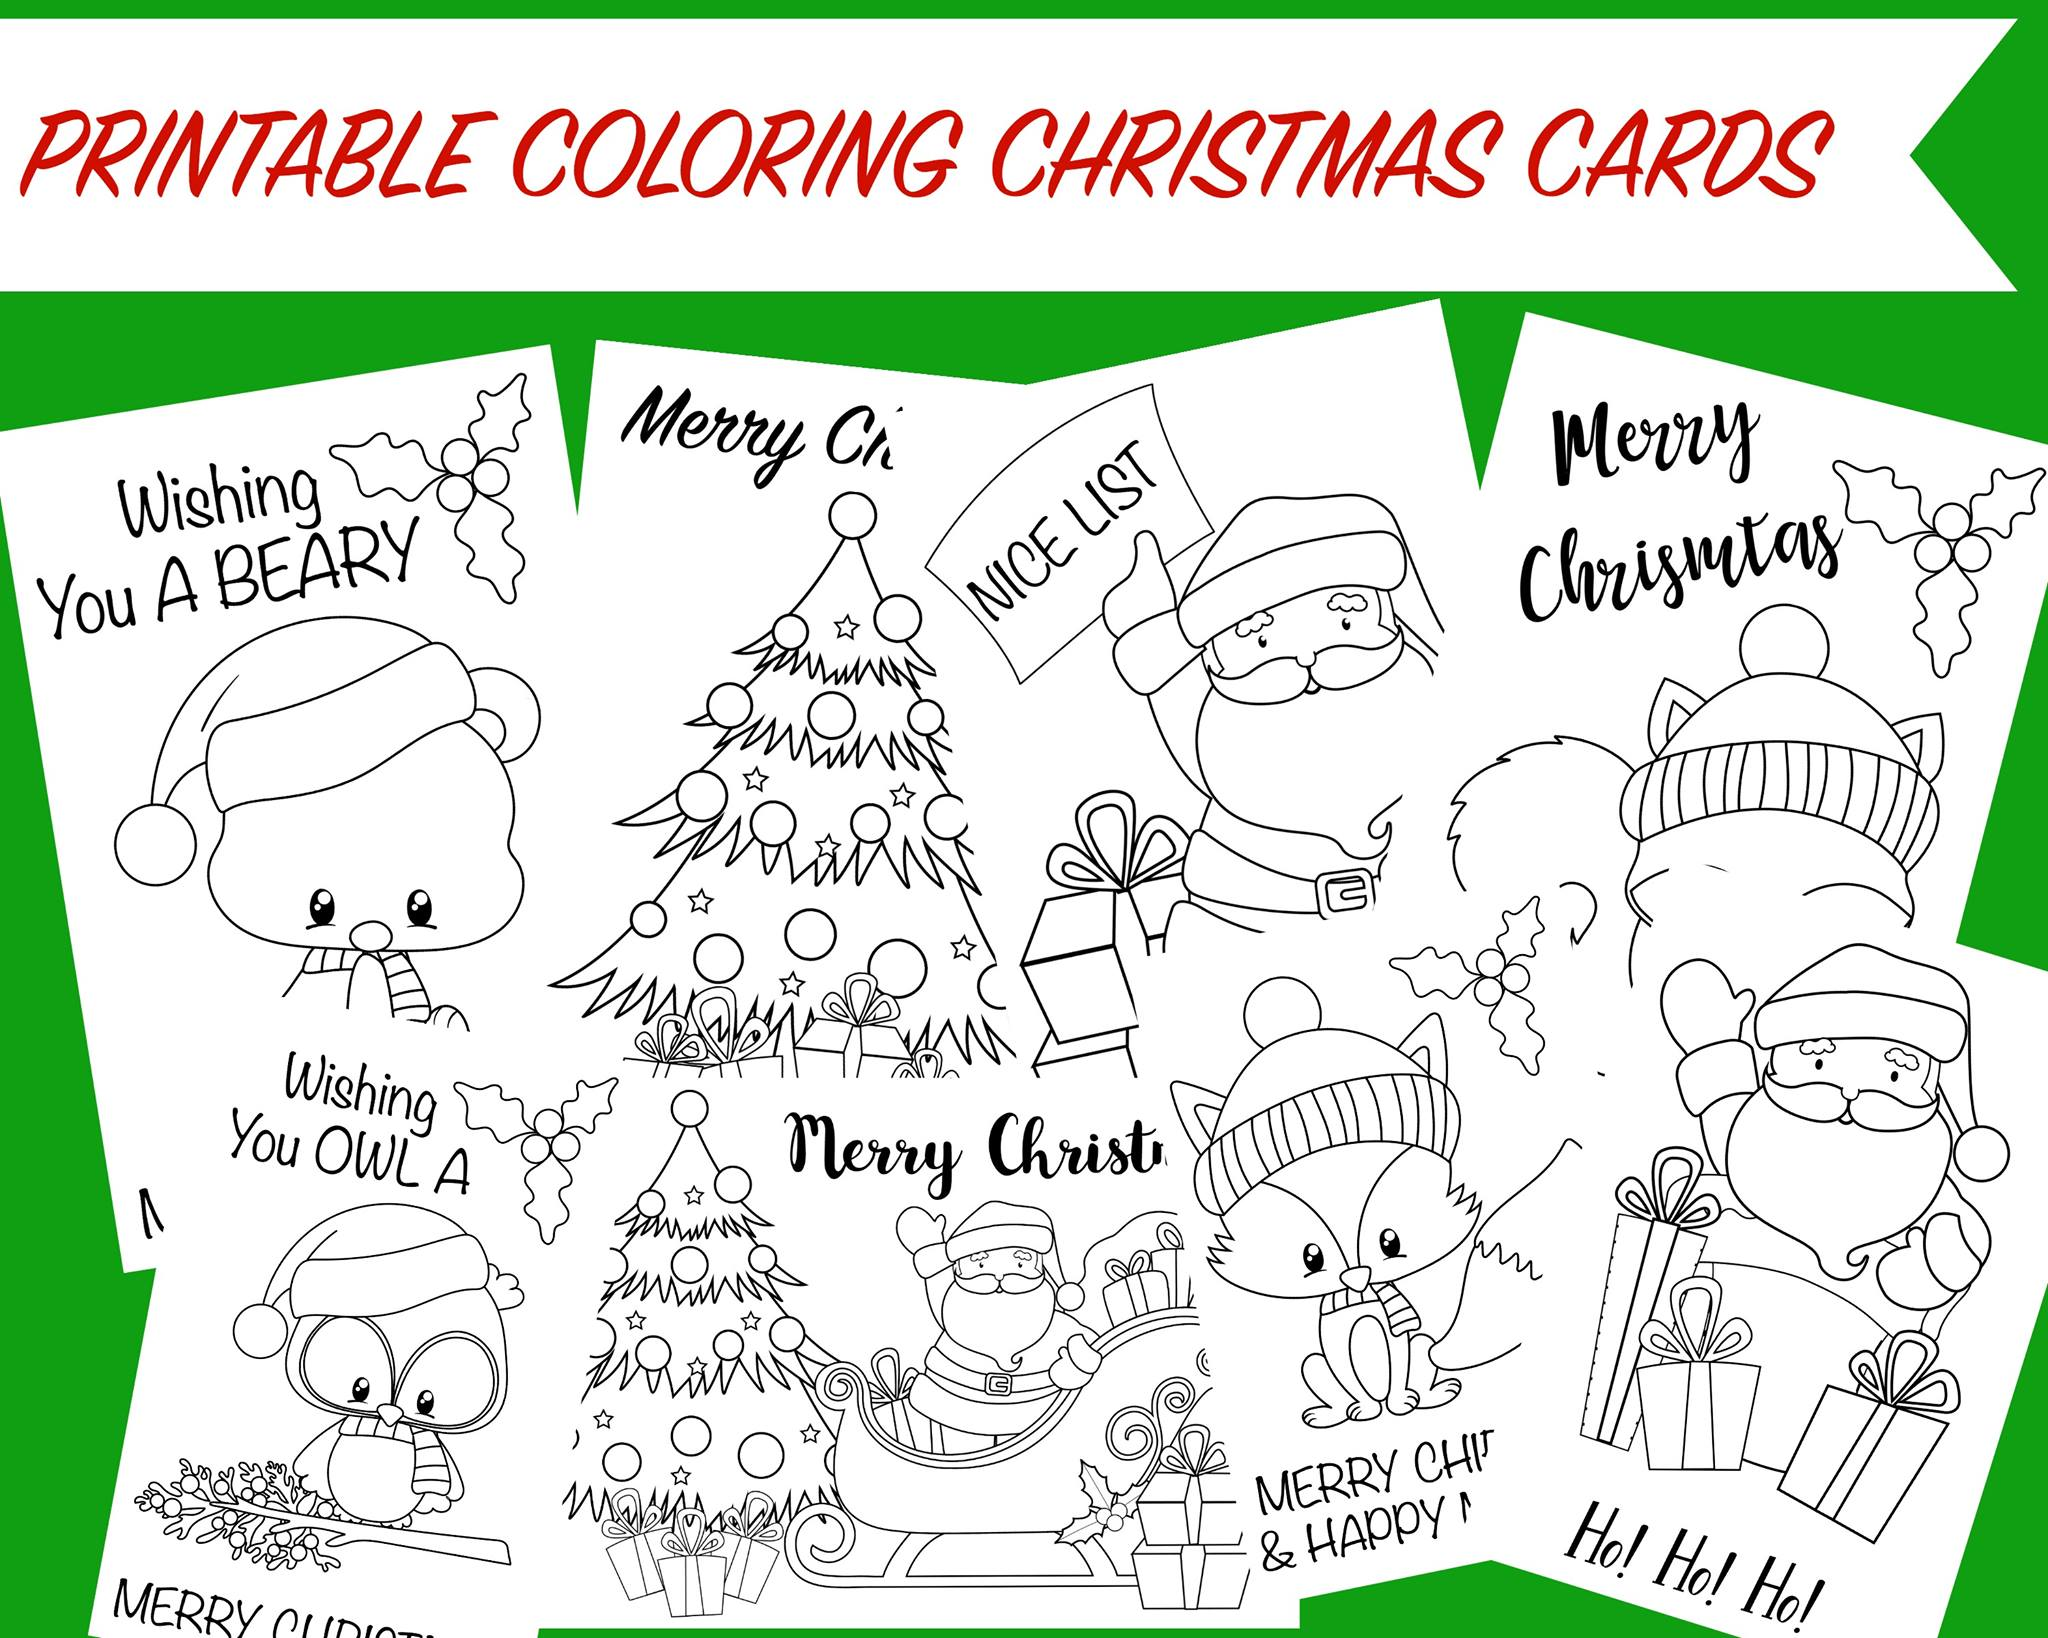 This is an image of Critical Printable Coloring Christmas Cards